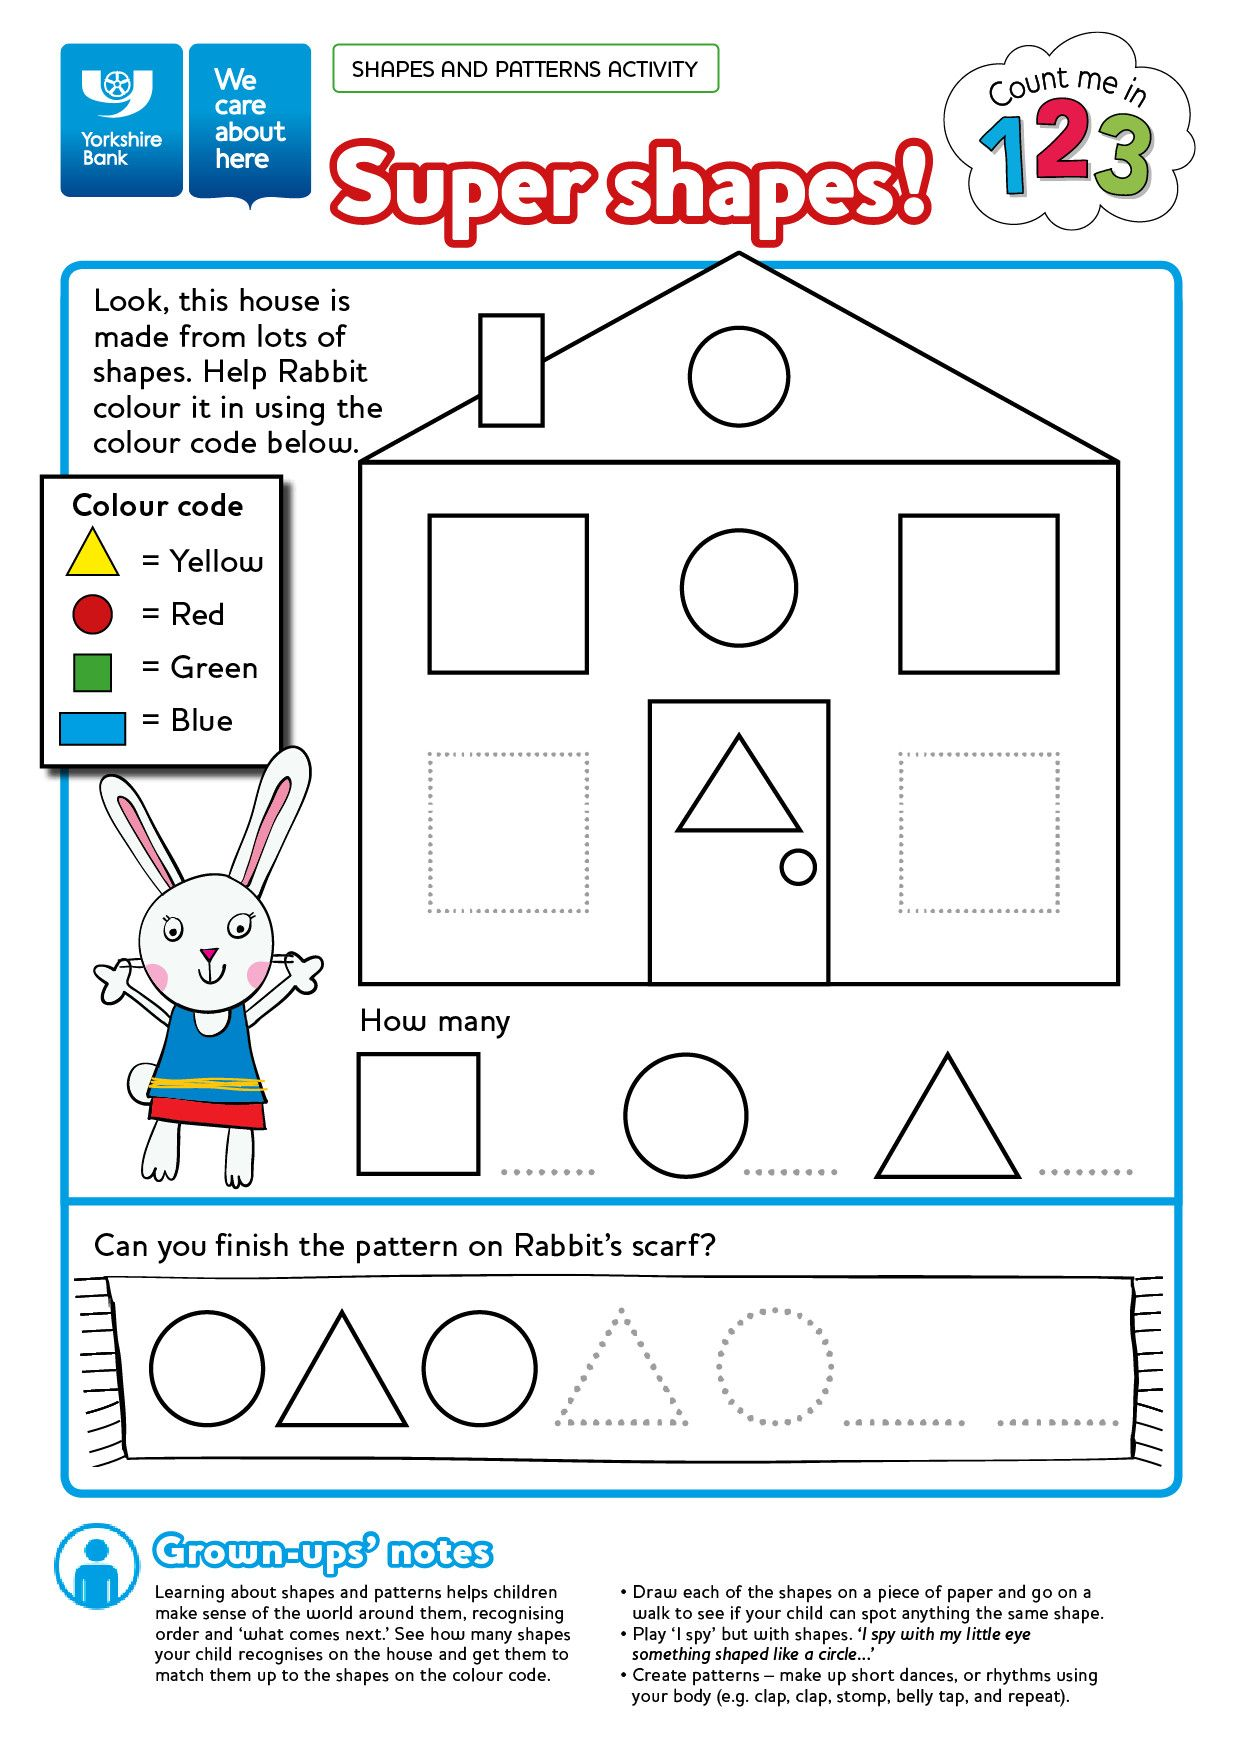 2 Grade R Worksheets Matching Pin On Toddler Activities In